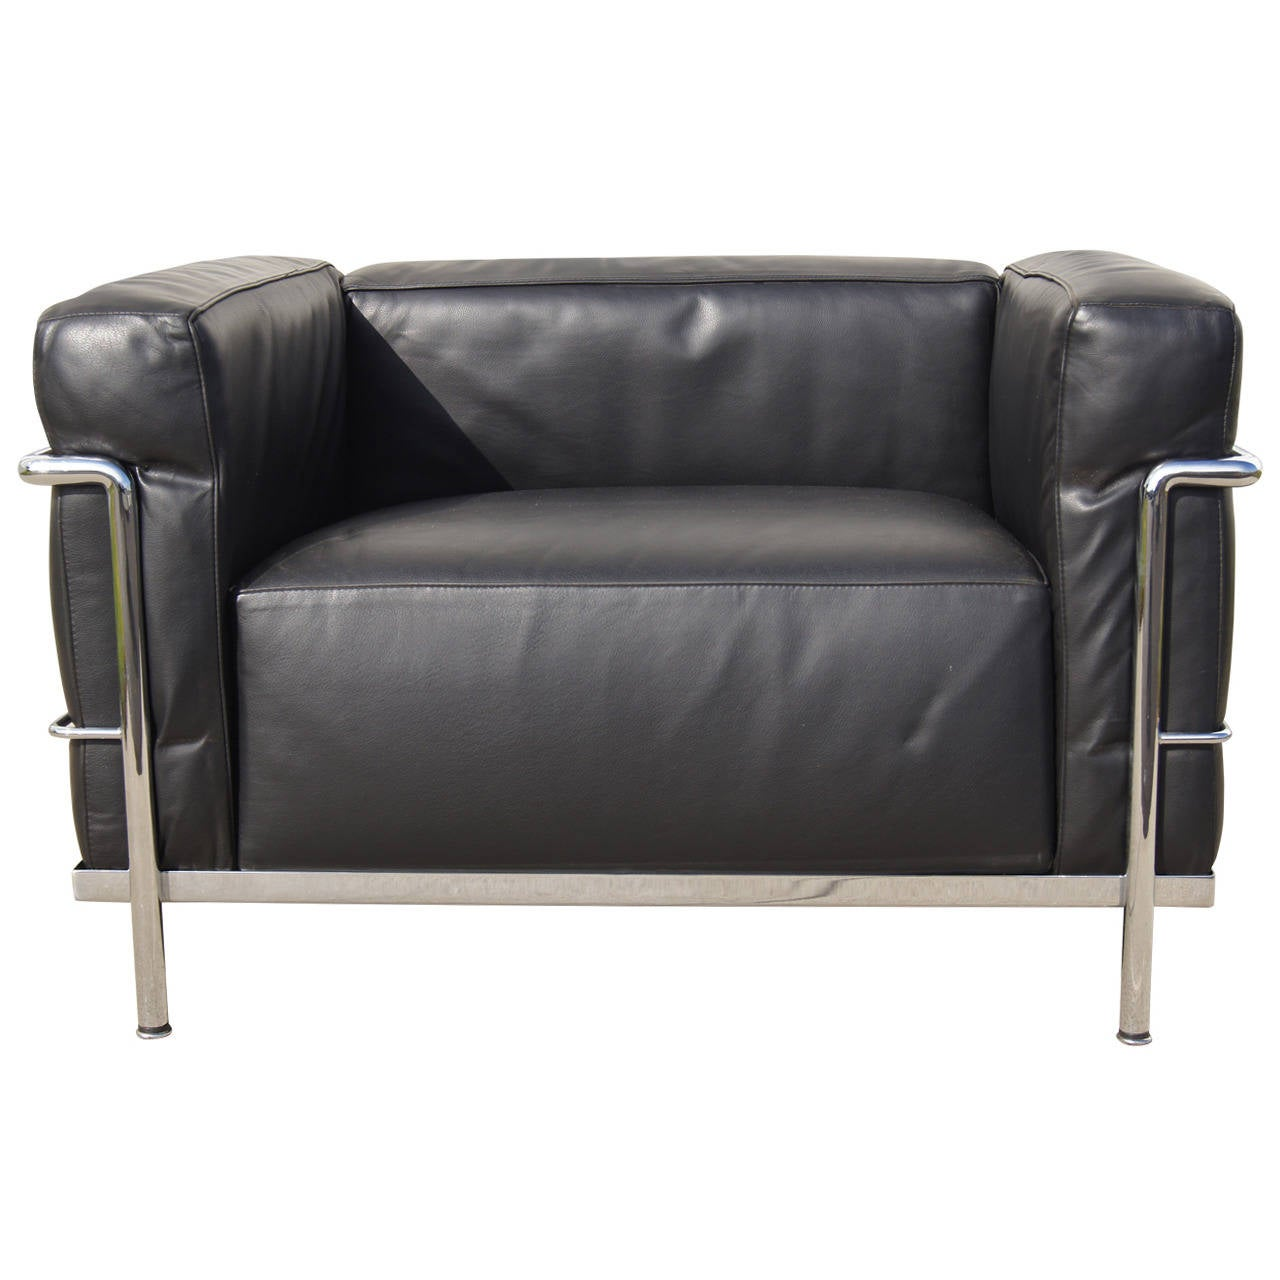 Lc3 grand confort lounge chair by le corbusier at 1stdibs for Sofas gran confort